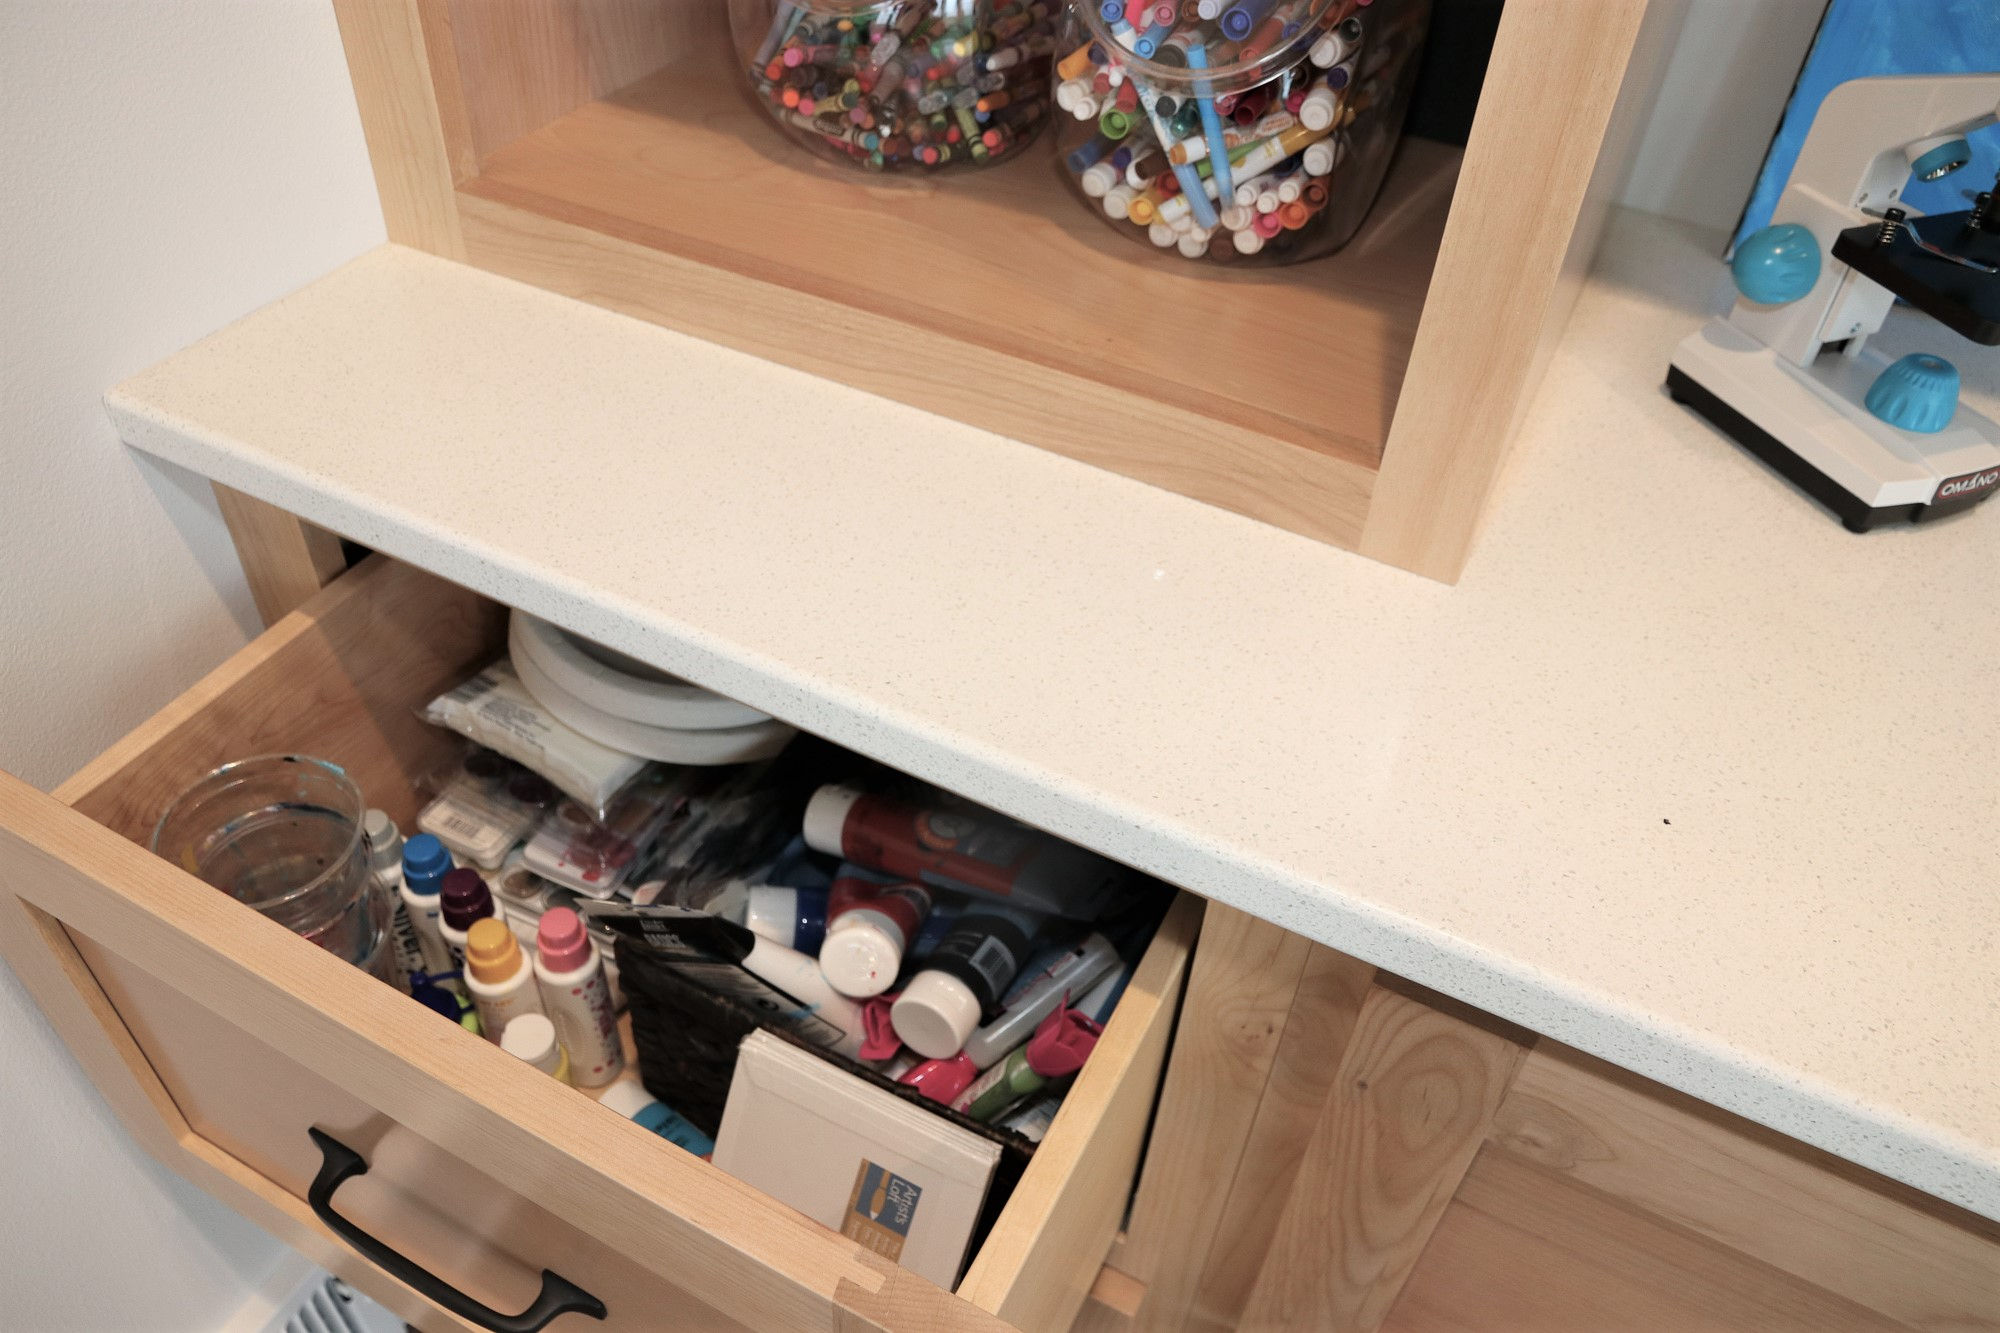 The paint drawer